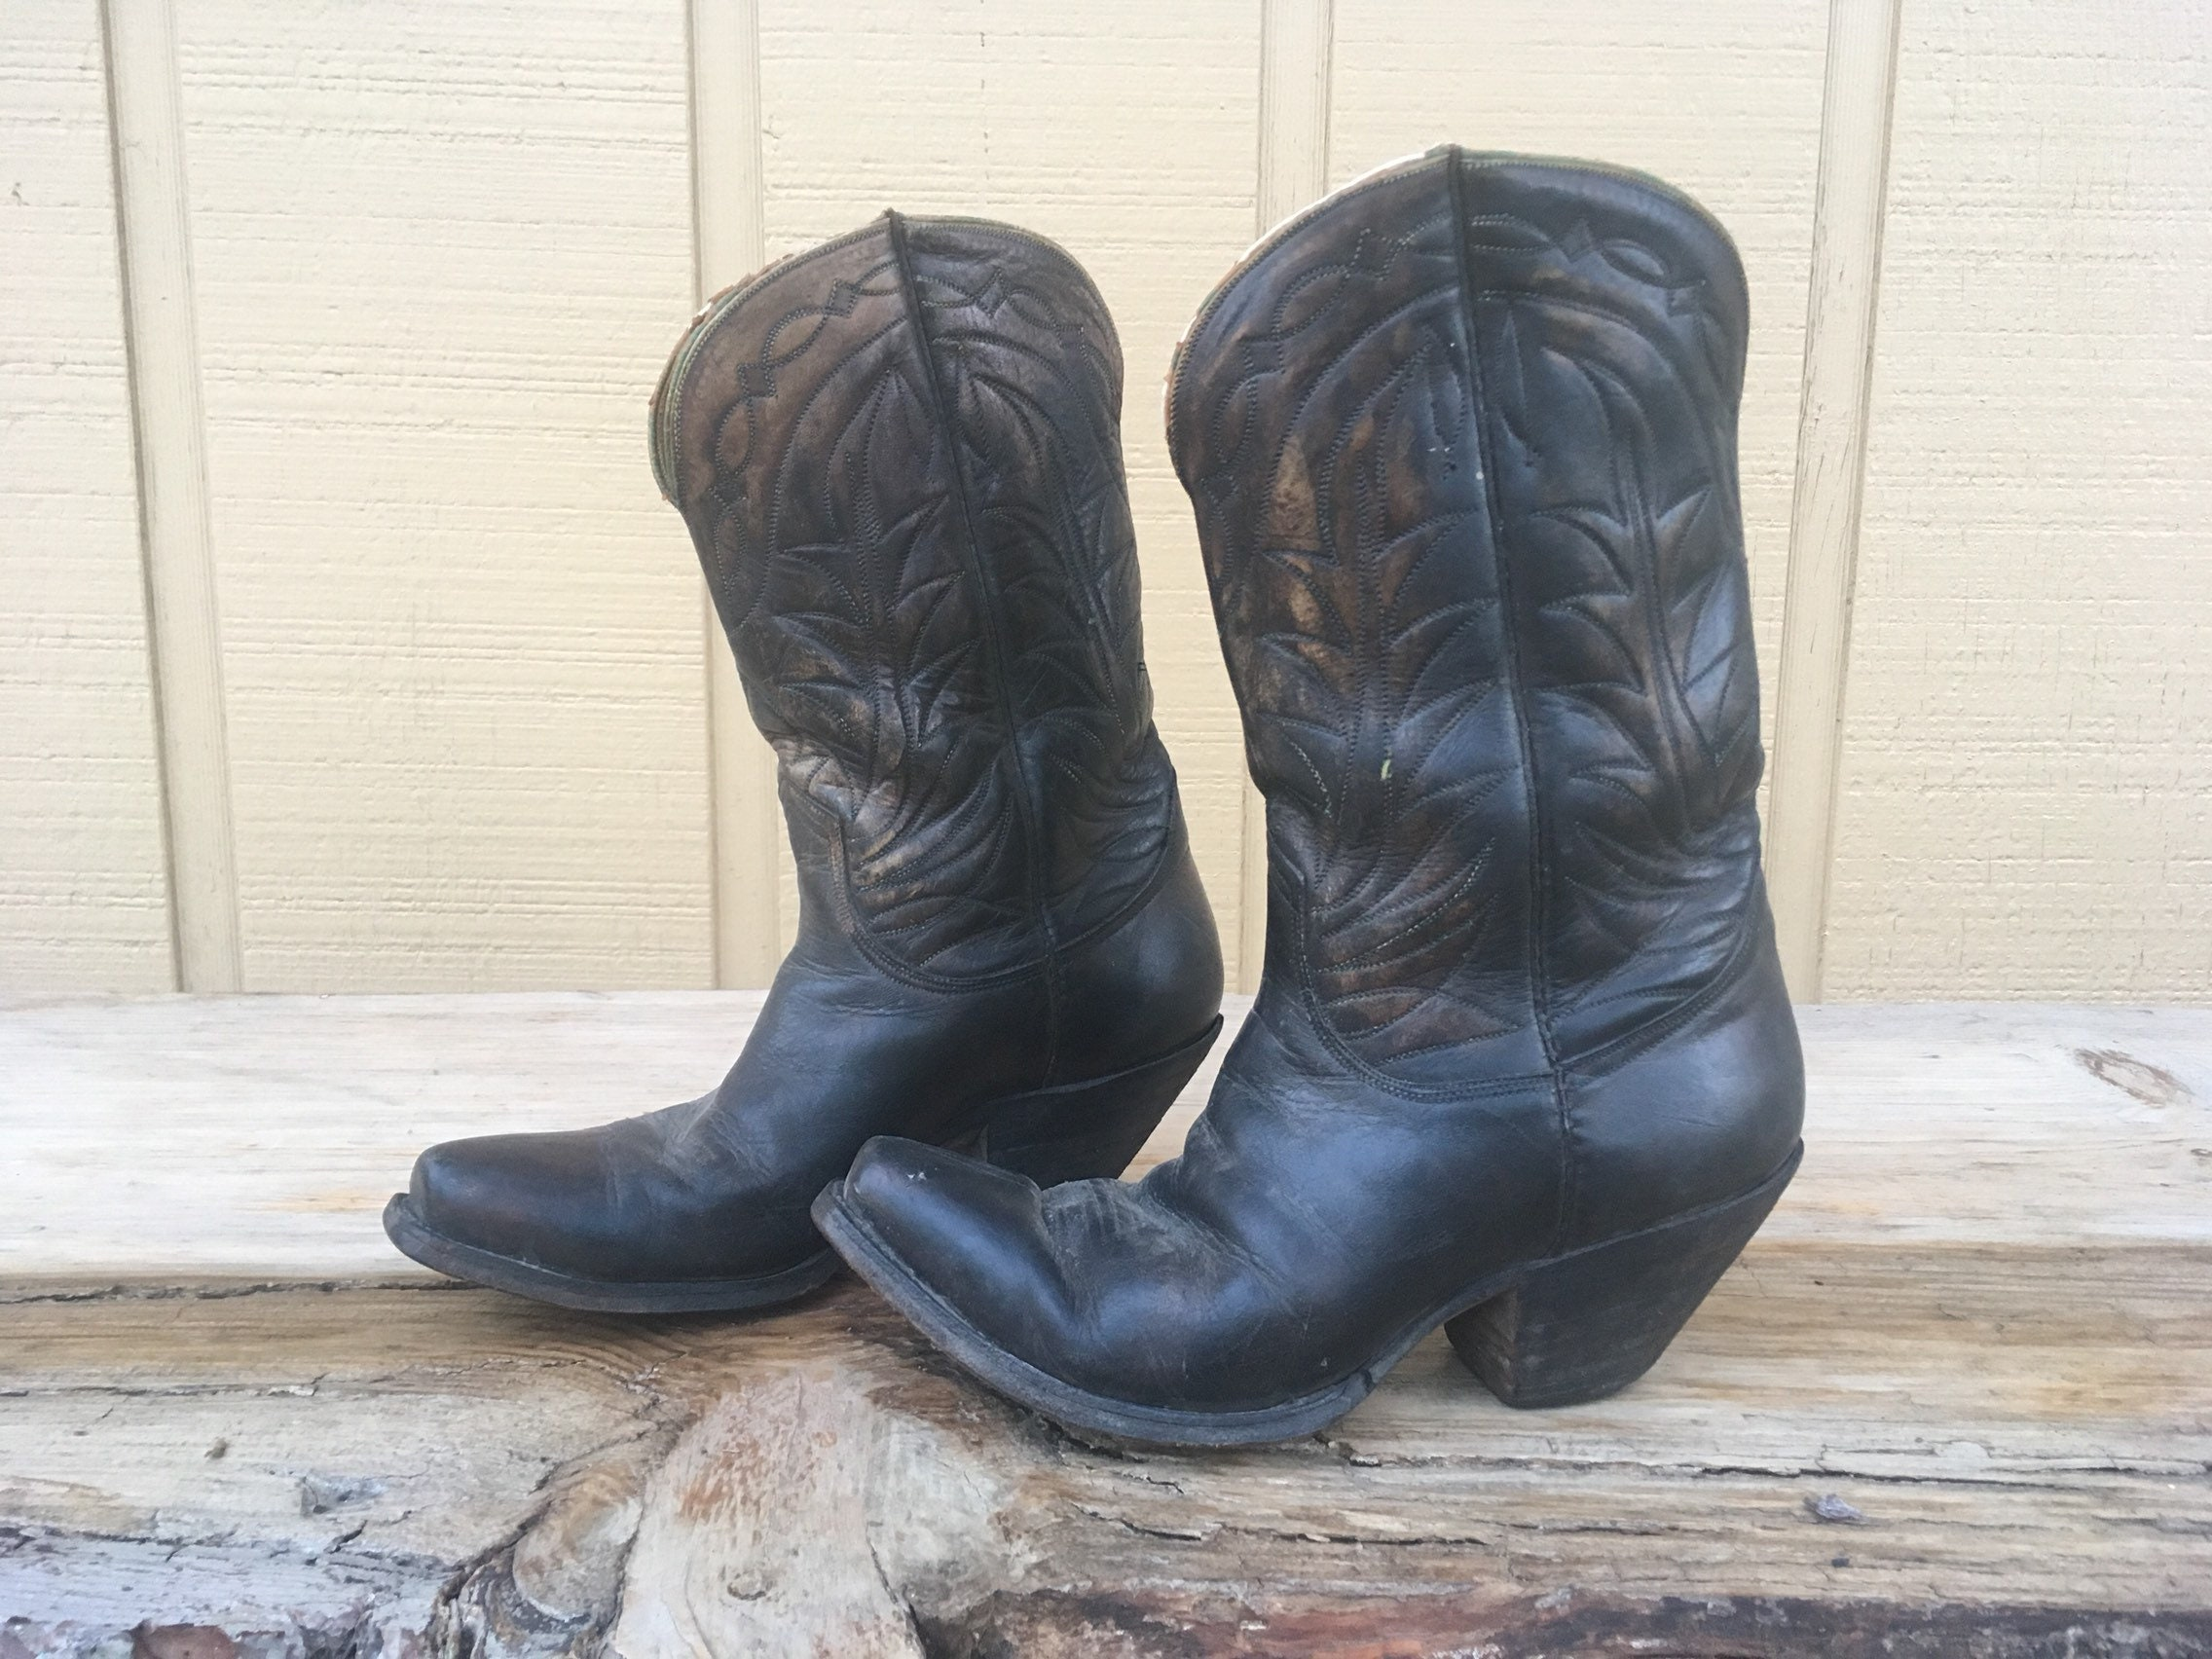 7ff13cdfb21 1950s Tony Lama boots mens 7 womens 9 6.5 6 1/2 7 7.5 7 1/2 8 8.5 8 1/2 9  50s peewee short shorty ankle square toe western boots black 40s